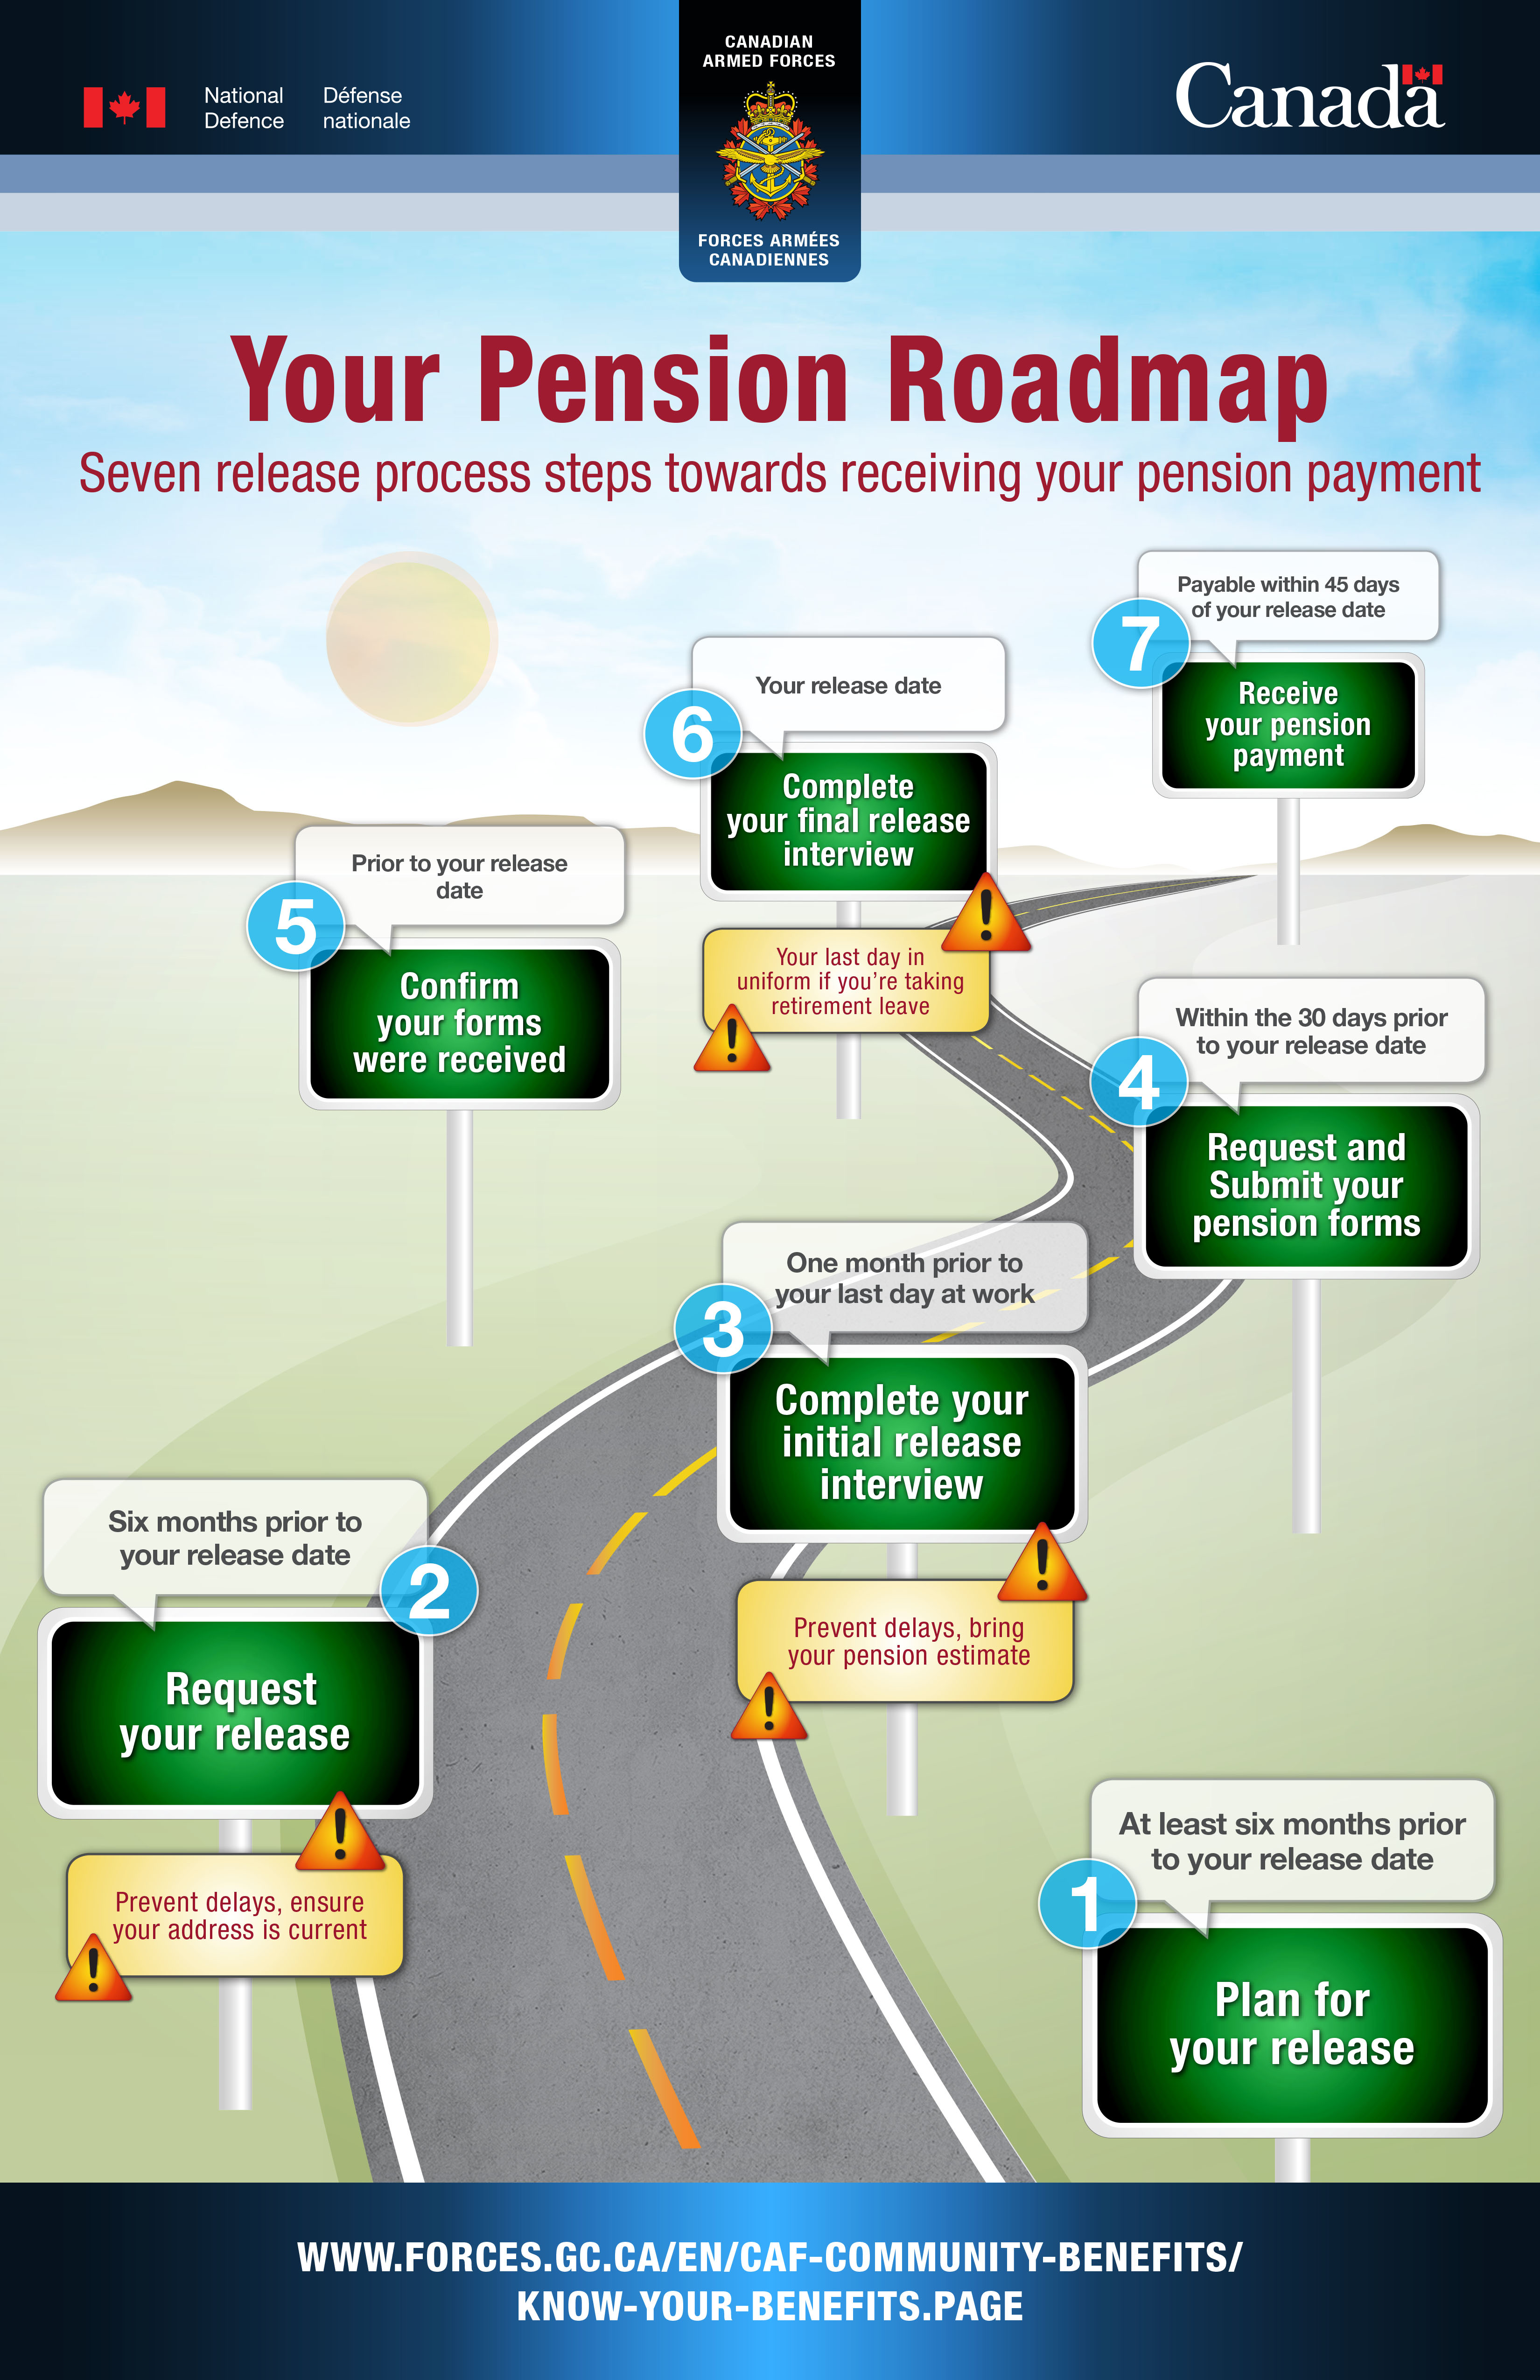 Your Pension Roadmap - Seven release process steps for eceiving your pension payment